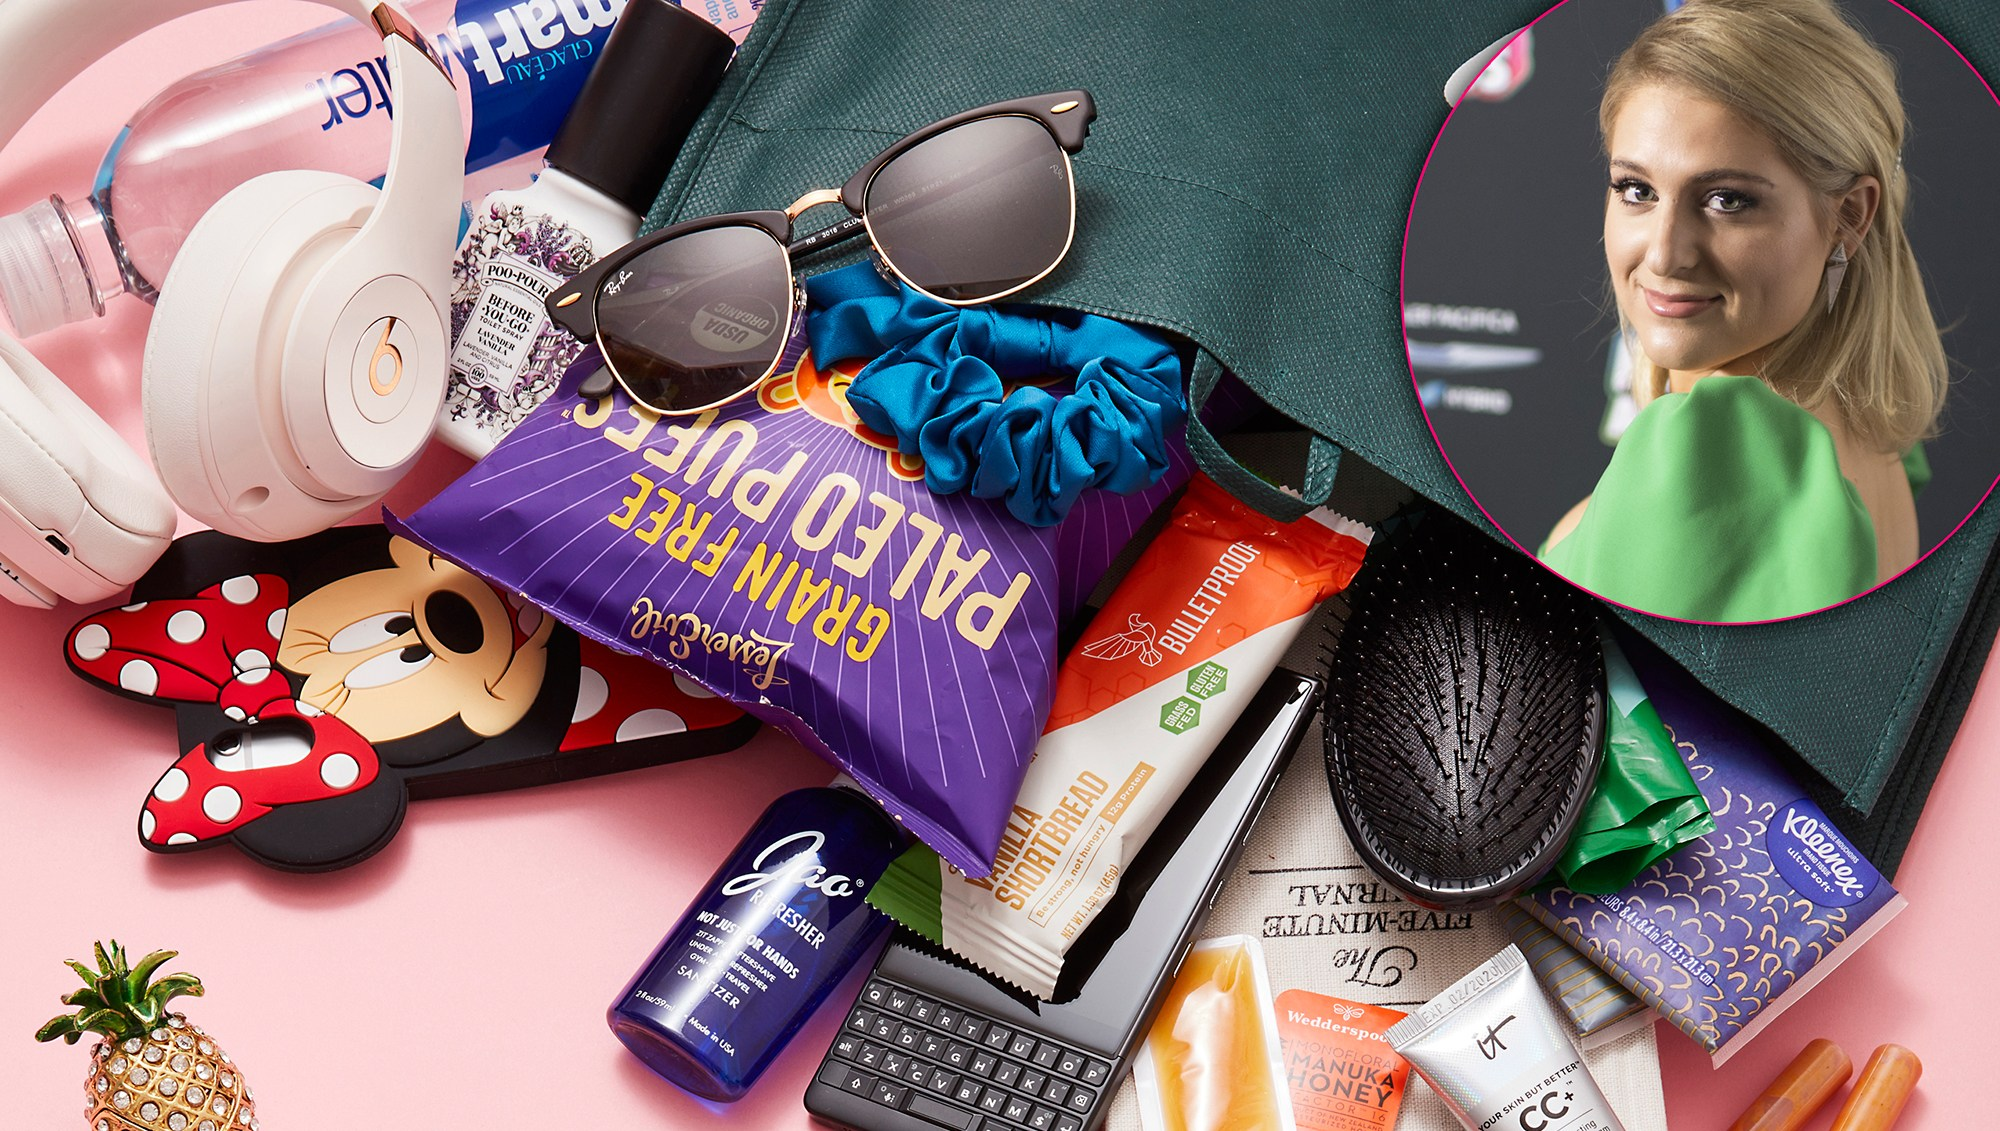 Meghan Trainor: What's in My Bag?